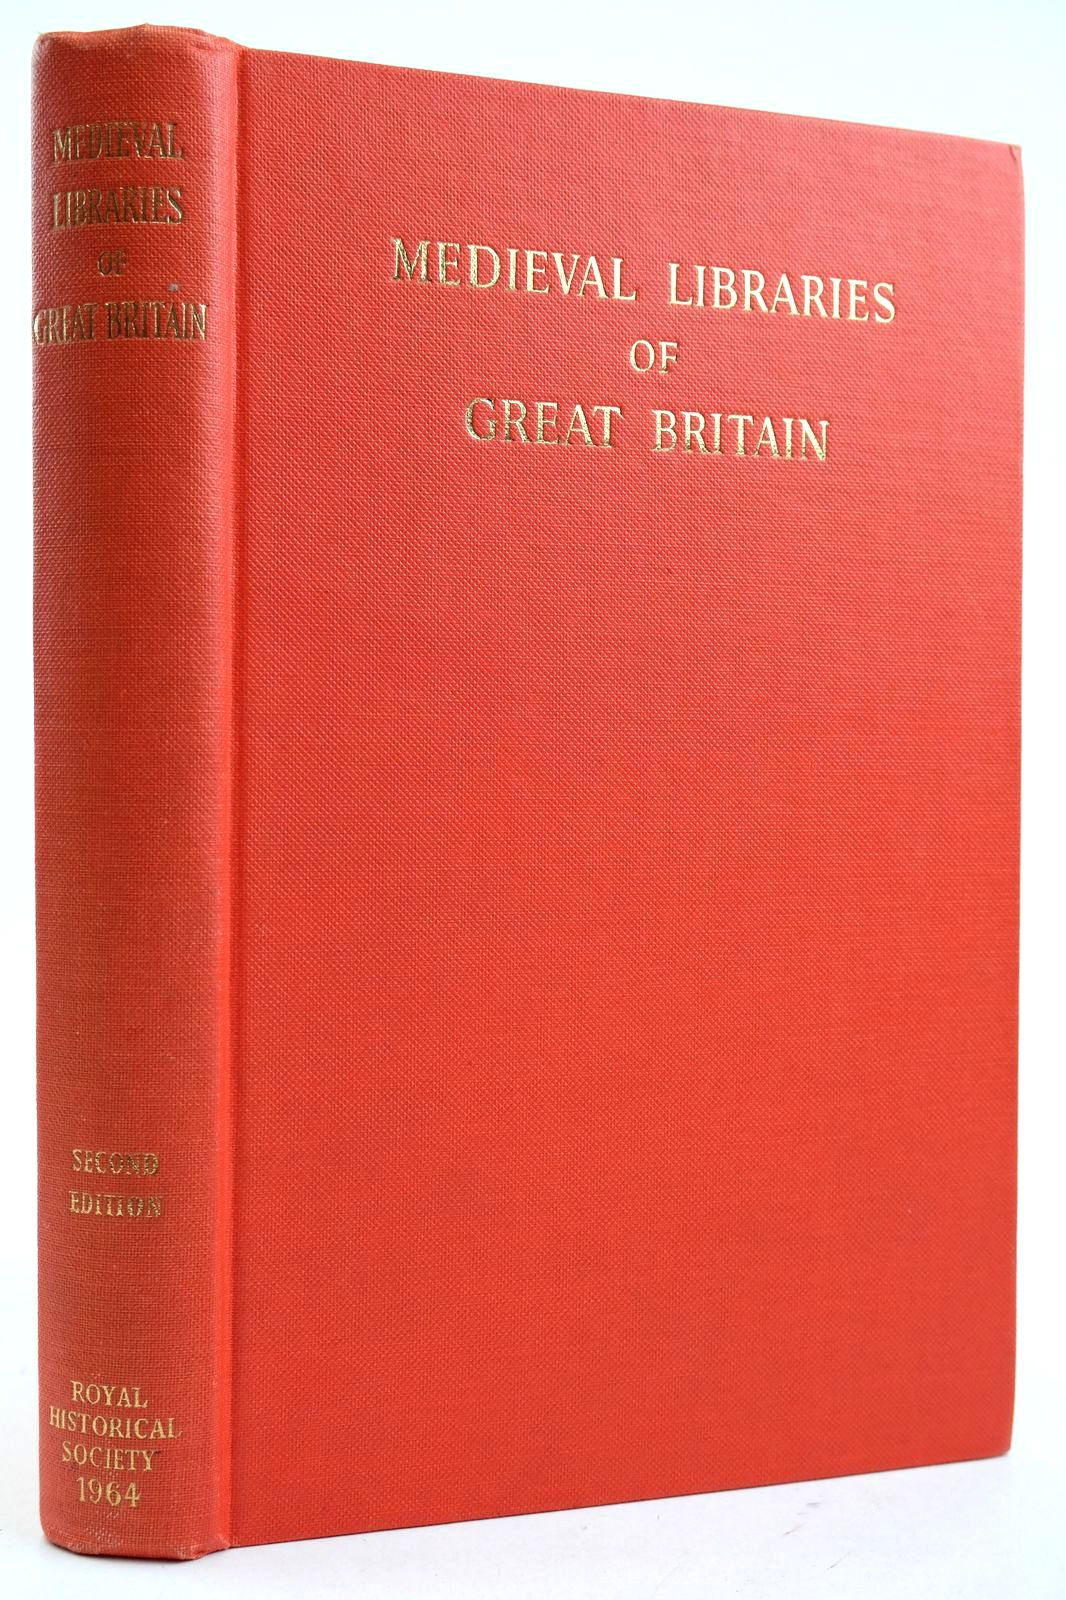 Photo of MEDIEVAL LIBRARIES OF GREAT BRITAIN A LIST OF SURVIVING BOOKS